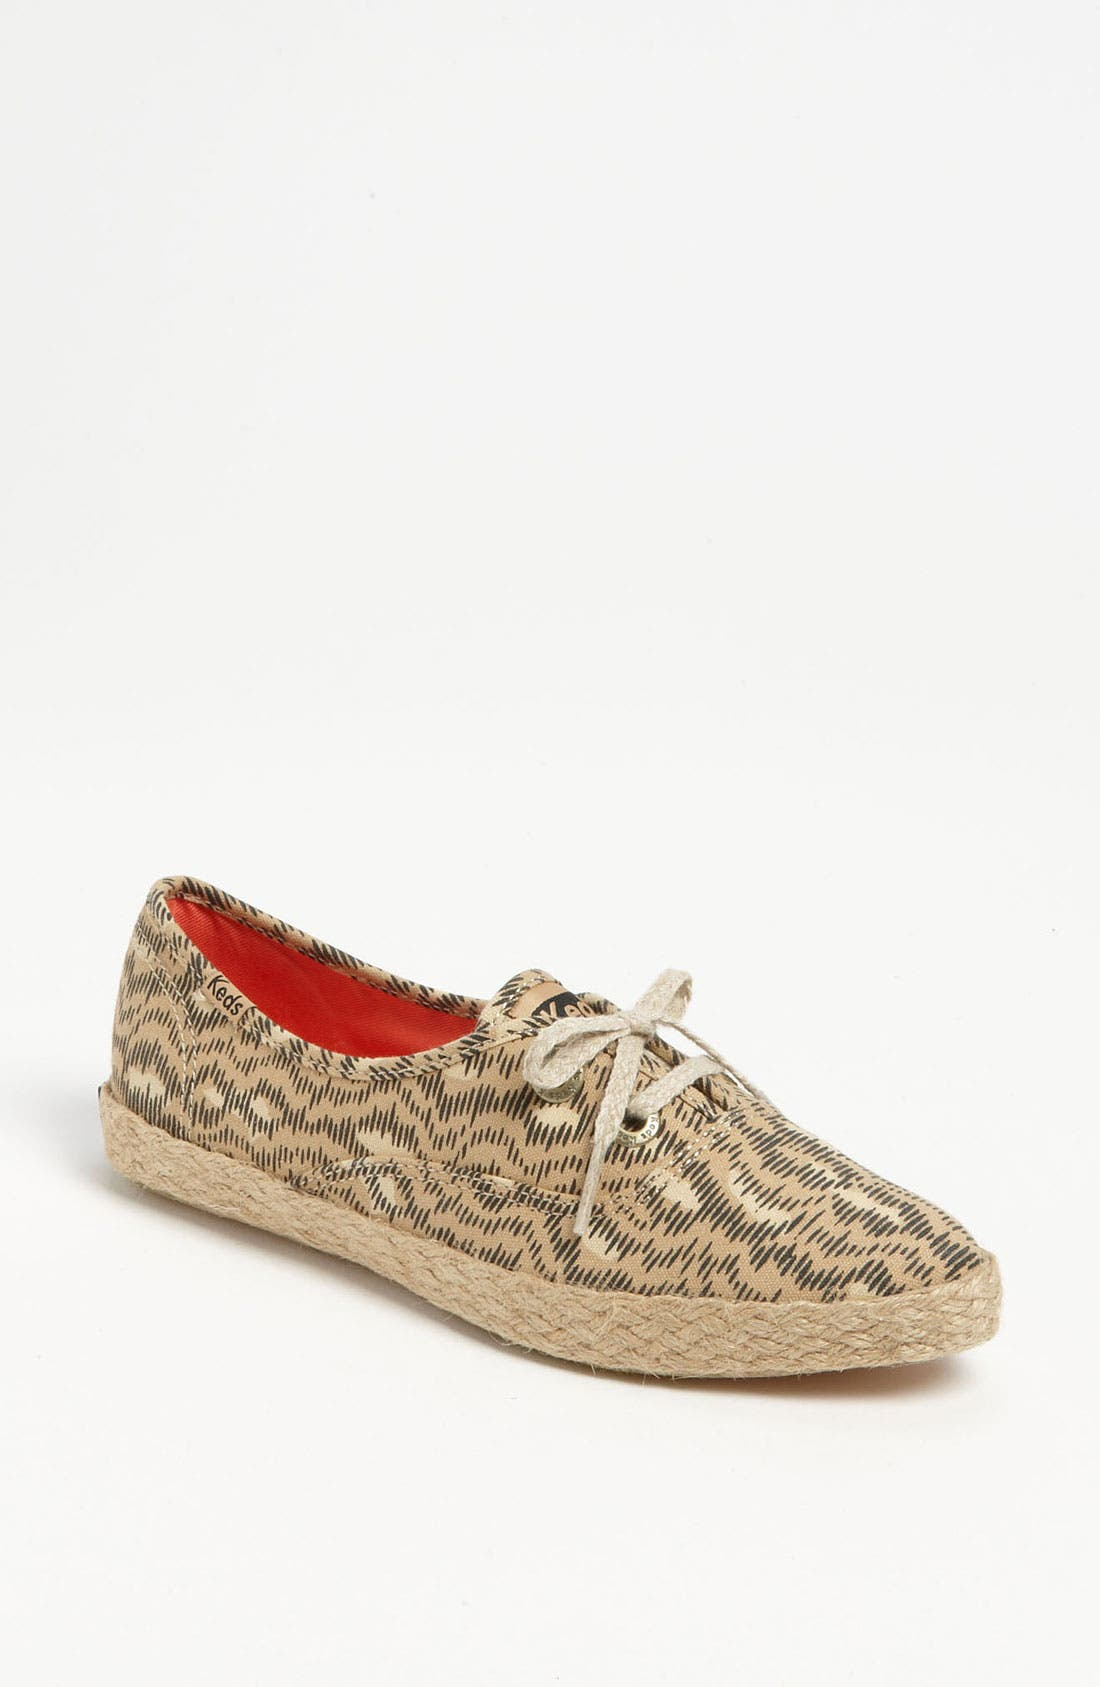 Alternate Image 1 Selected - Keds® 'Pointer Animal' Jute Trim Sneaker (Women)